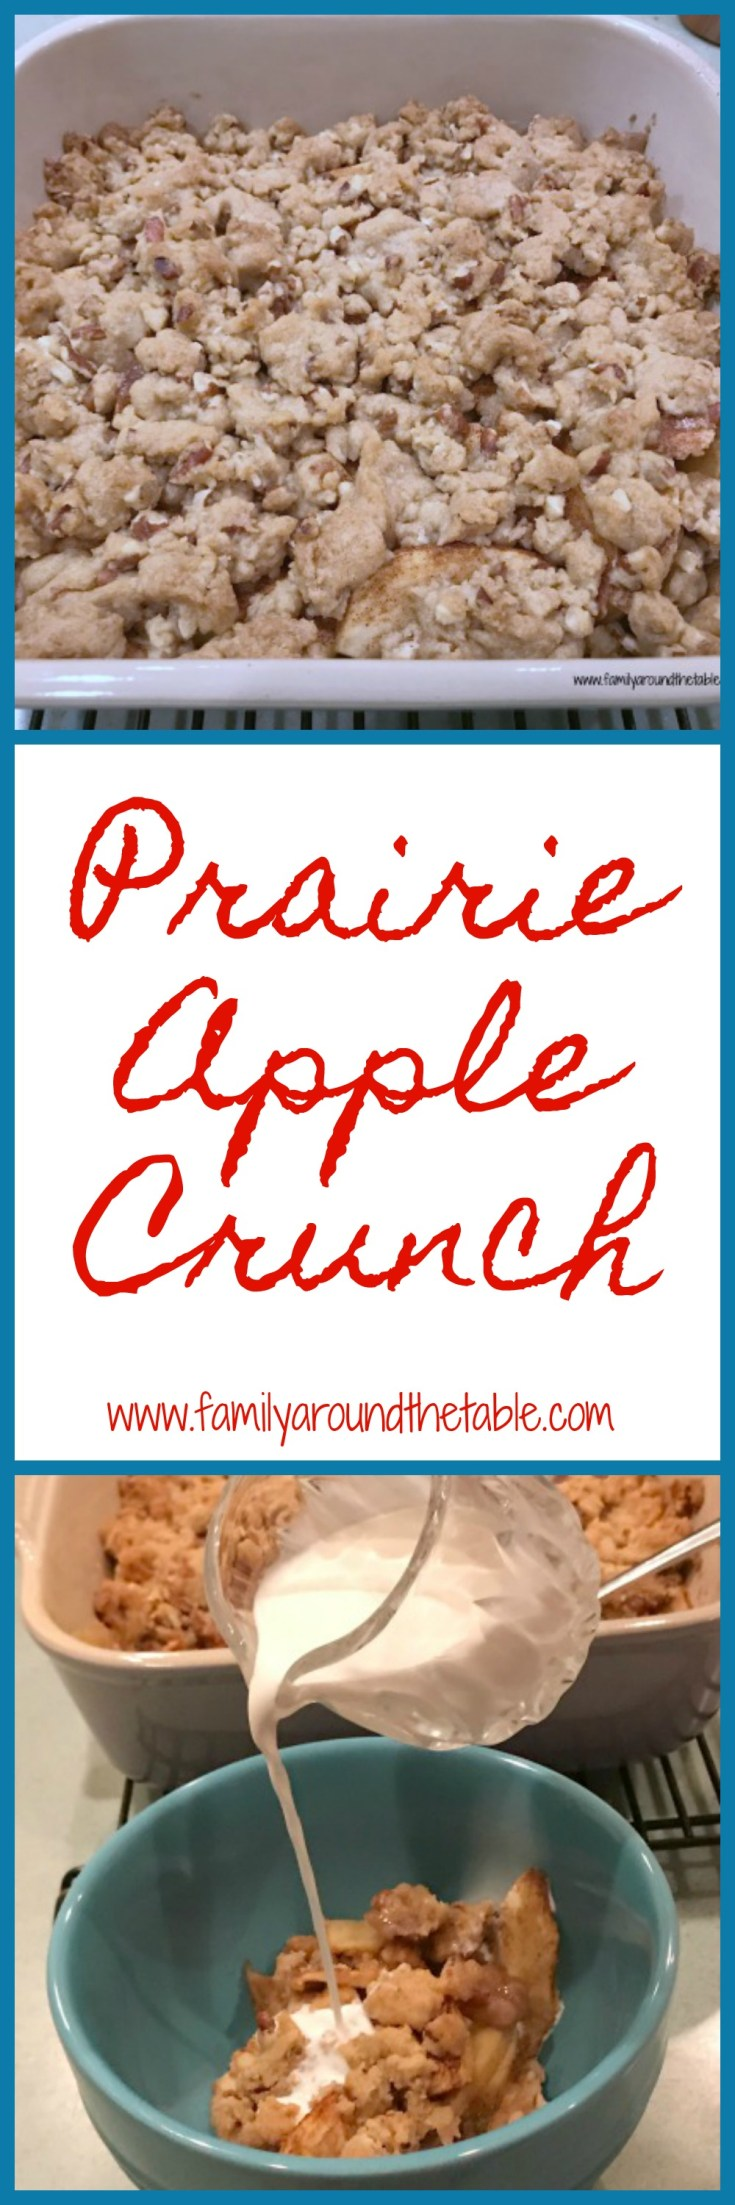 Prairie apple crunch is full of sweet apples and a tasty crunch making it a delightful fall dessert.